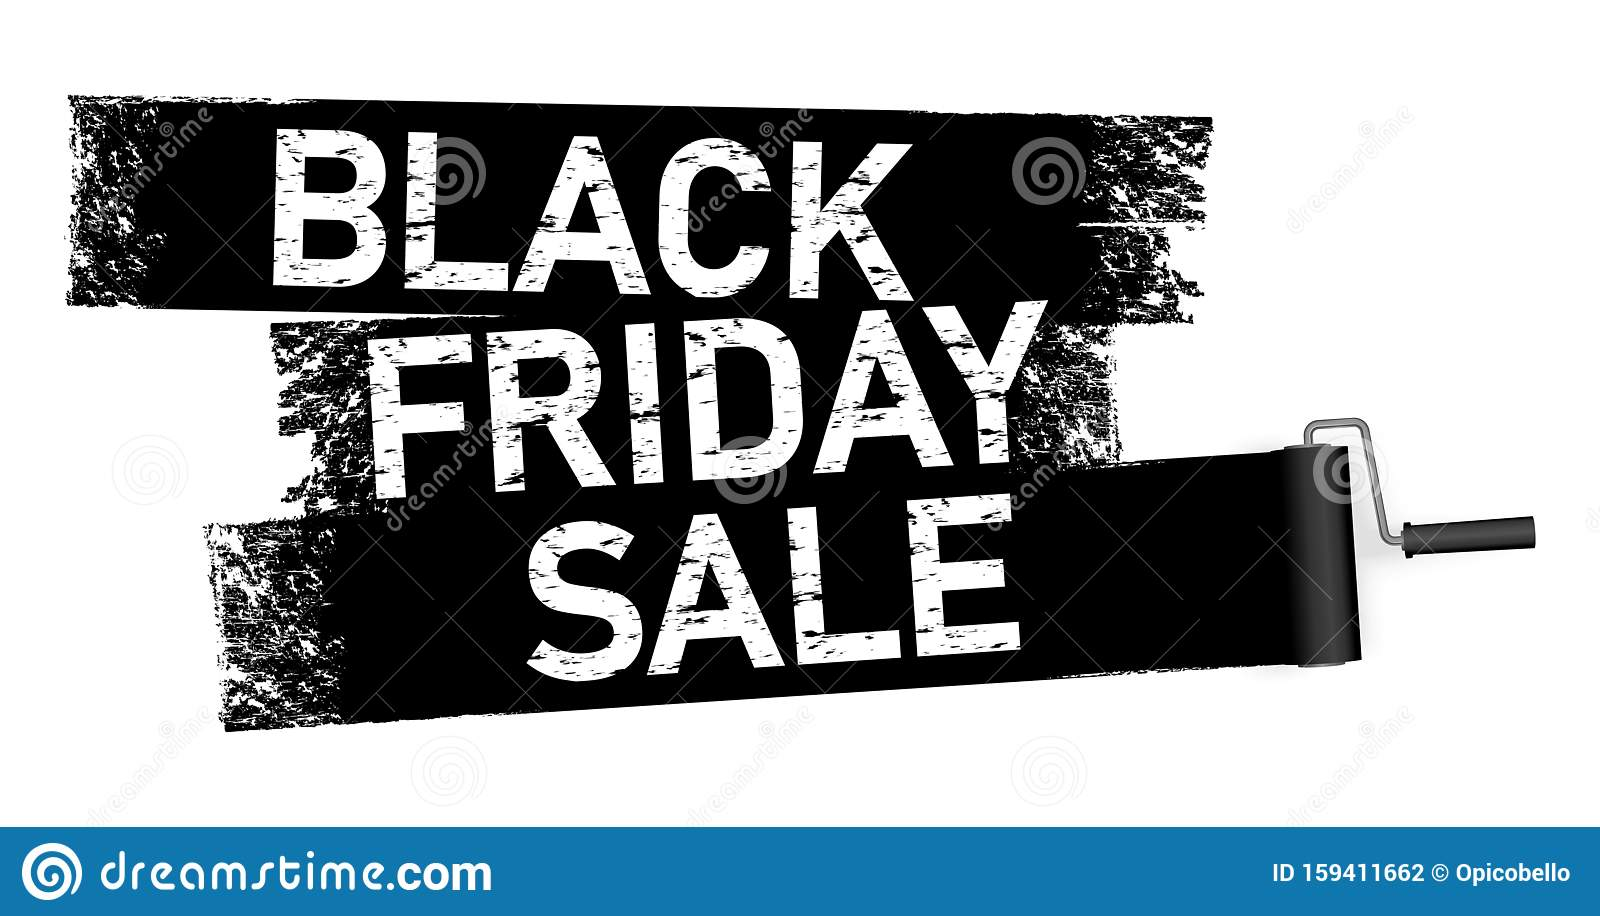 Paint Roller Painting Black Friday Sale Stock Vector Illustration Of Cheap Promotion 159411662